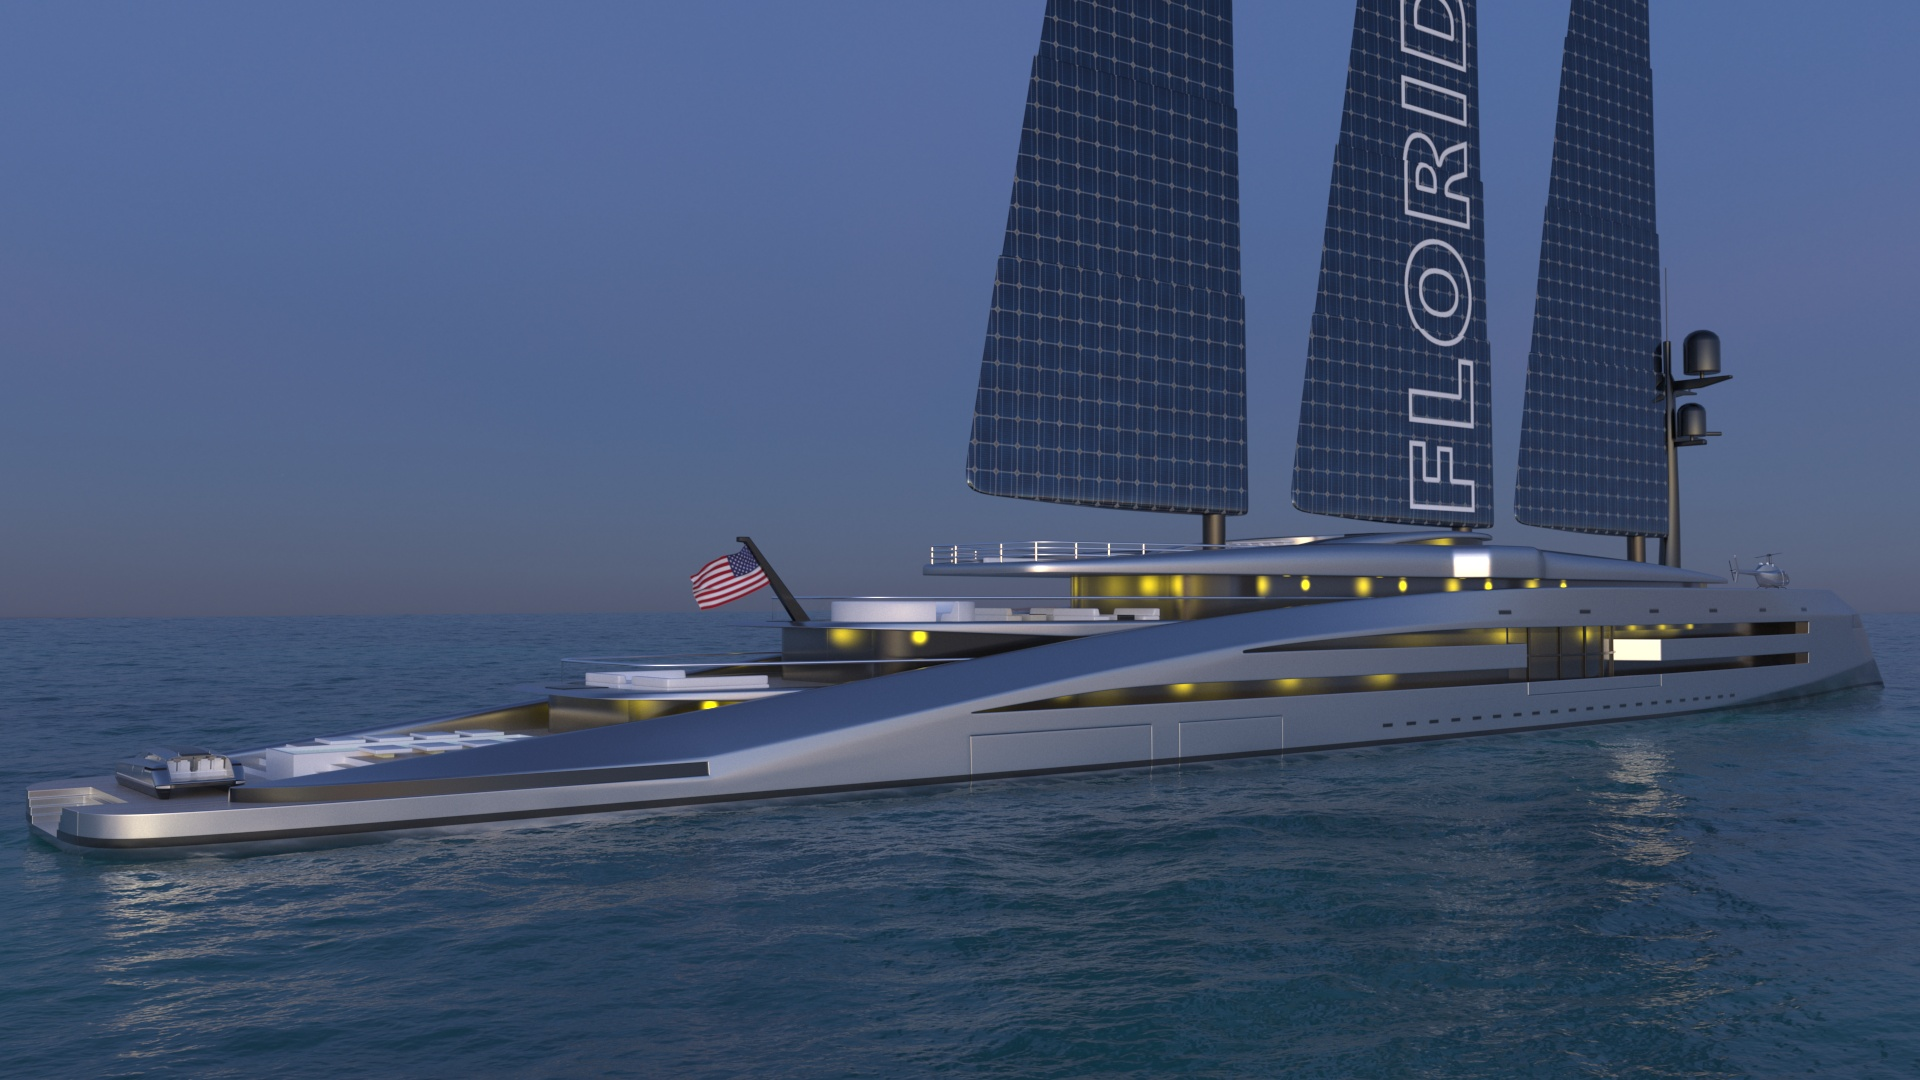 render of Florida superyacht at night reverse angle